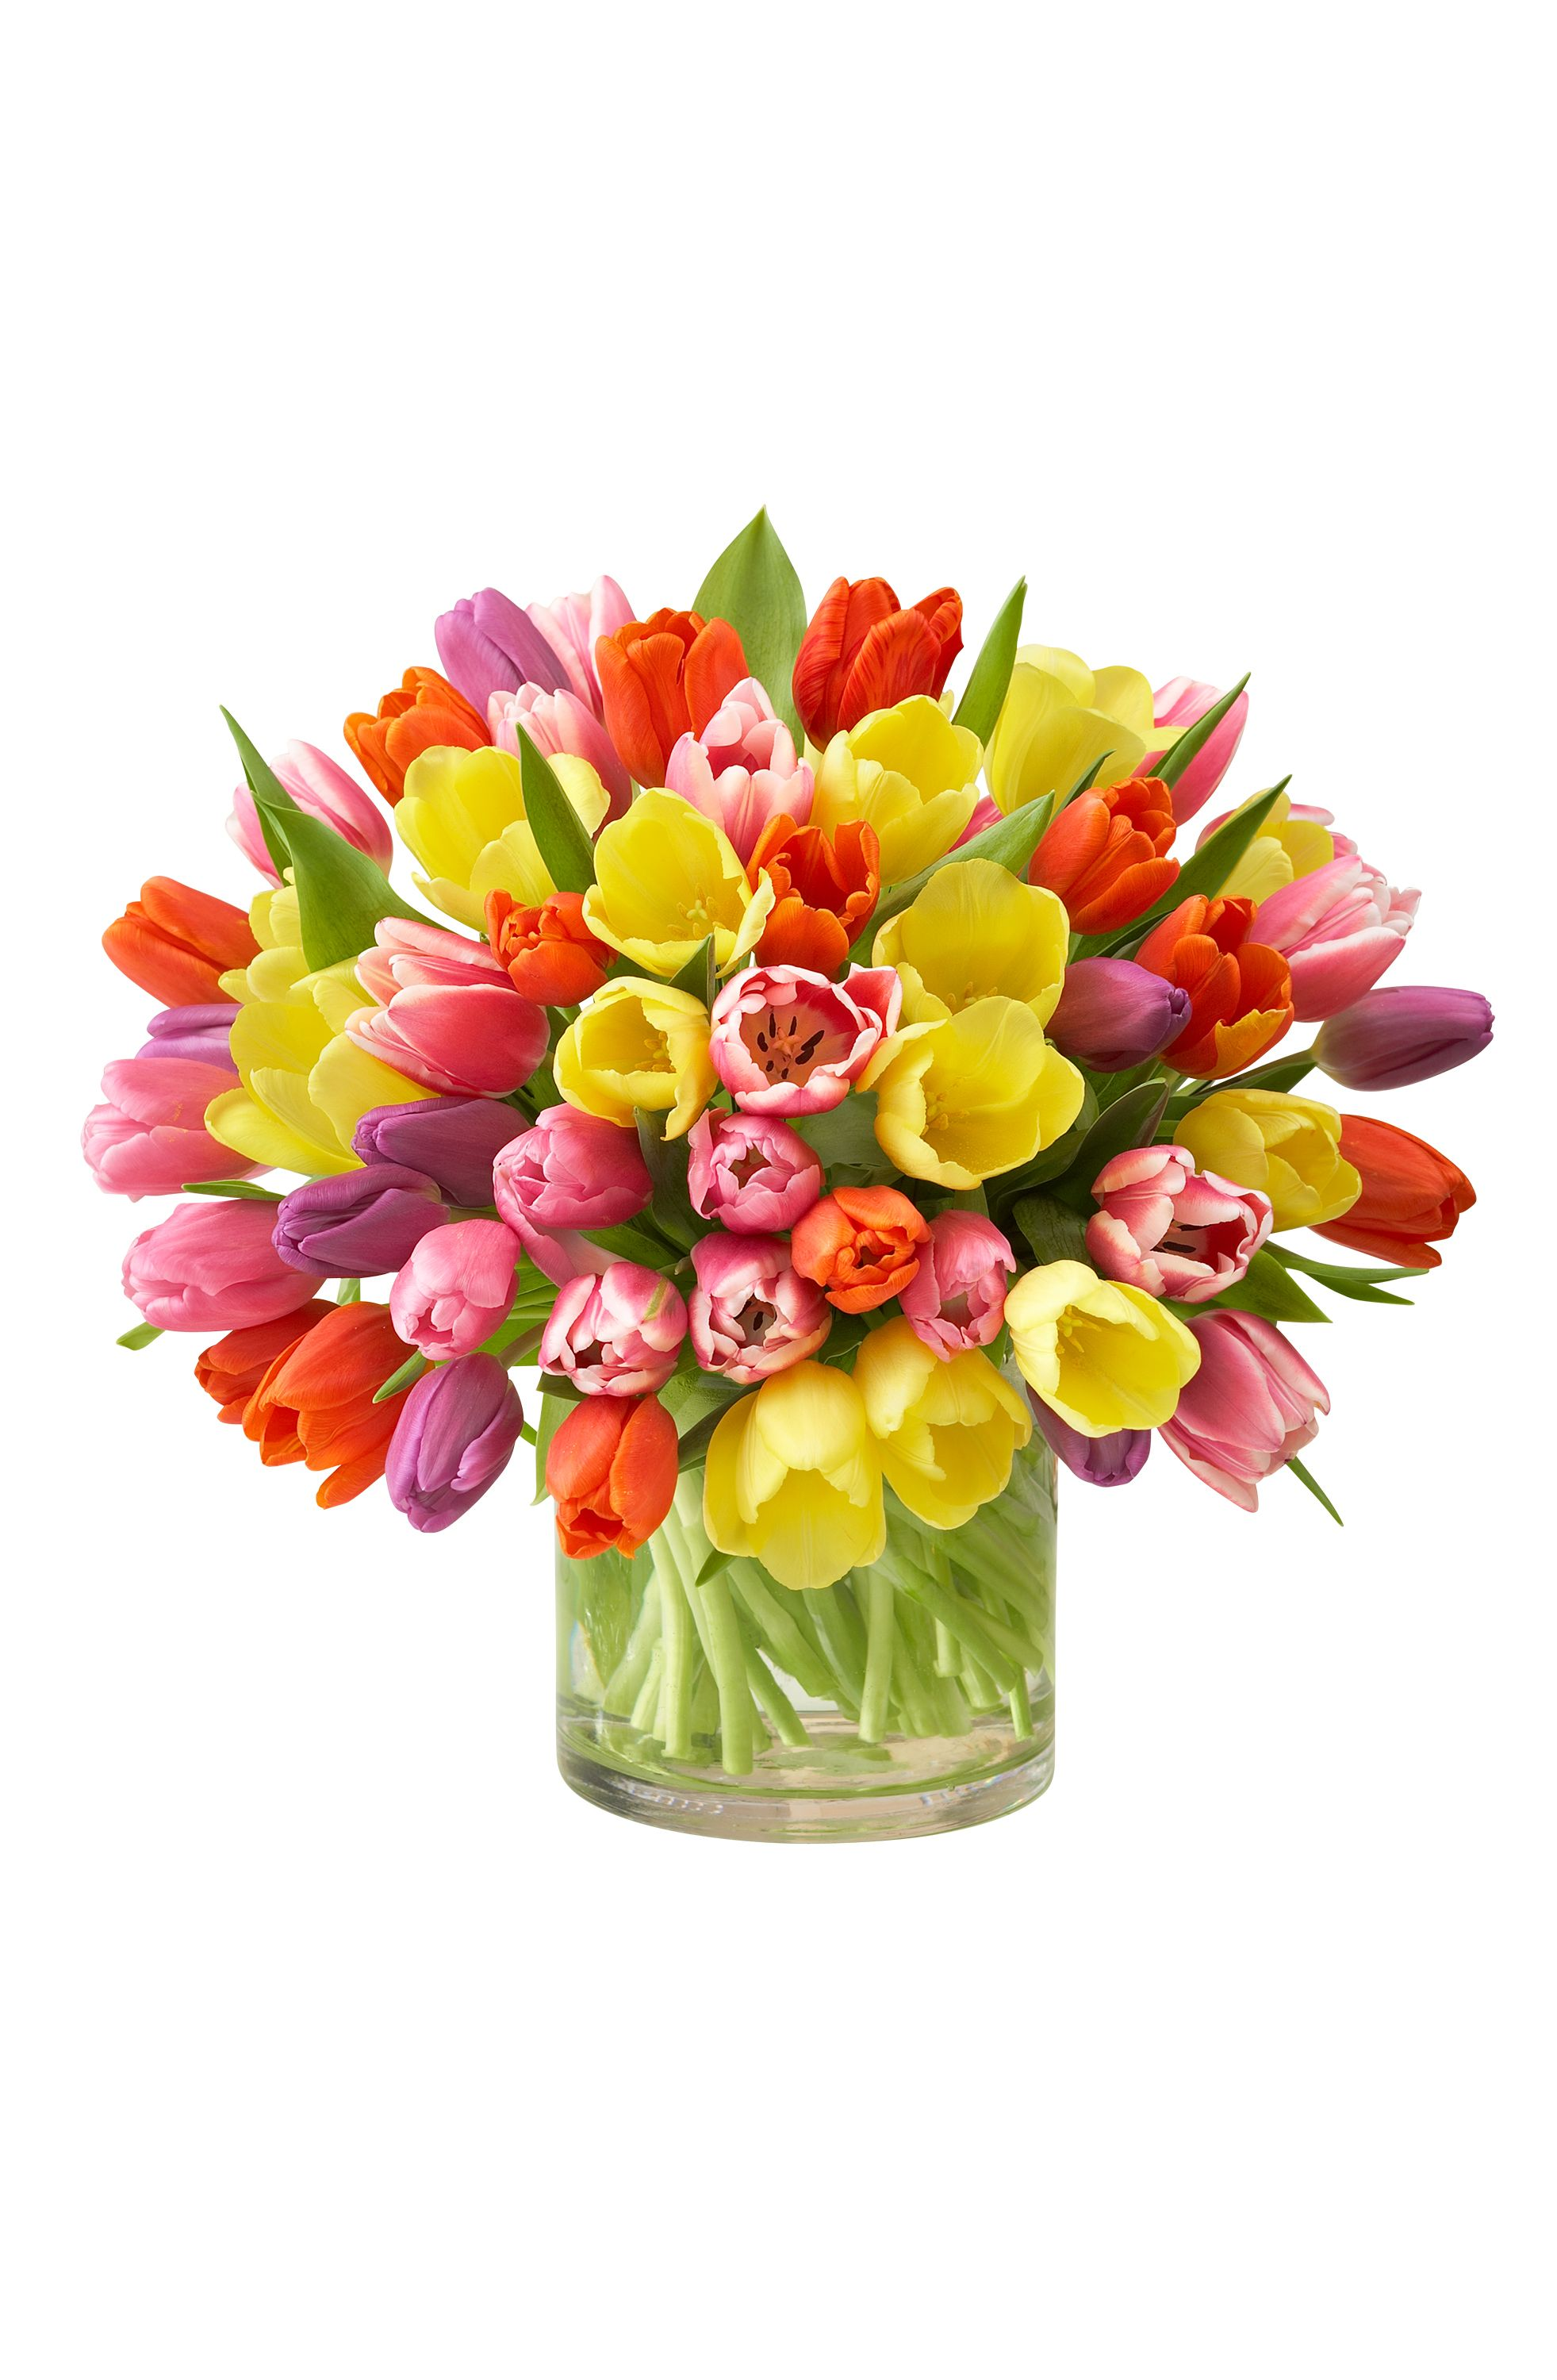 20 Mothers Day Flower Ideas Mothers Day Bouquets